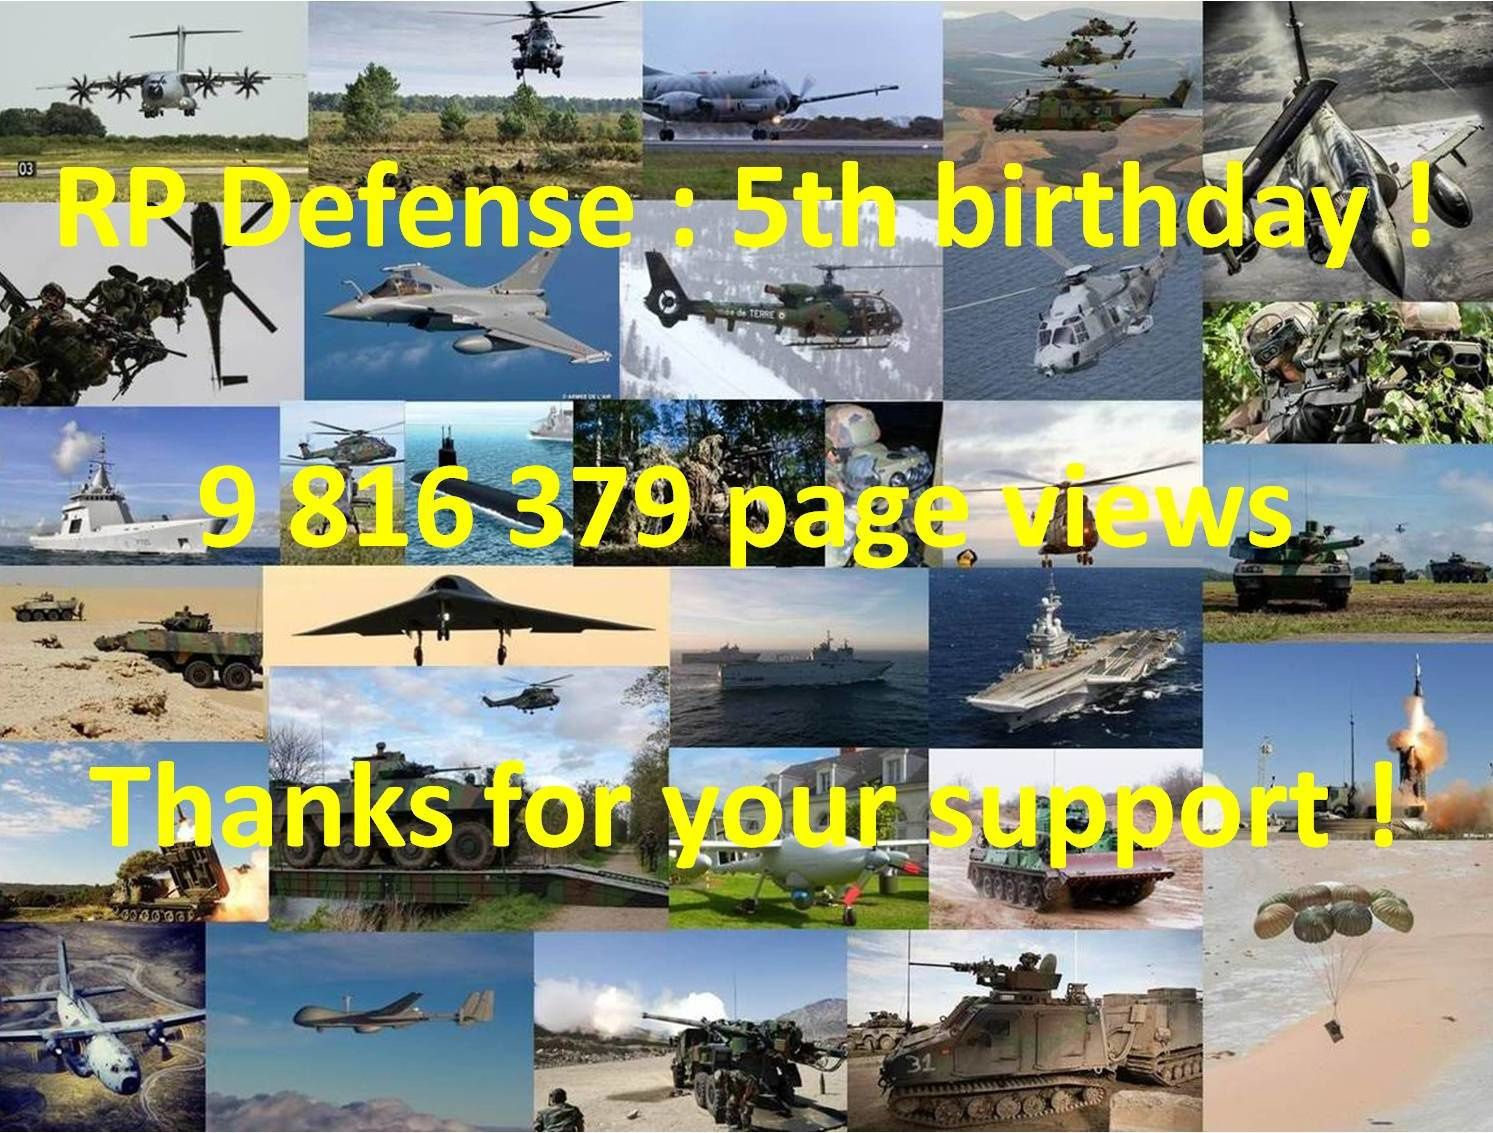 RP Defense: 5th birthday